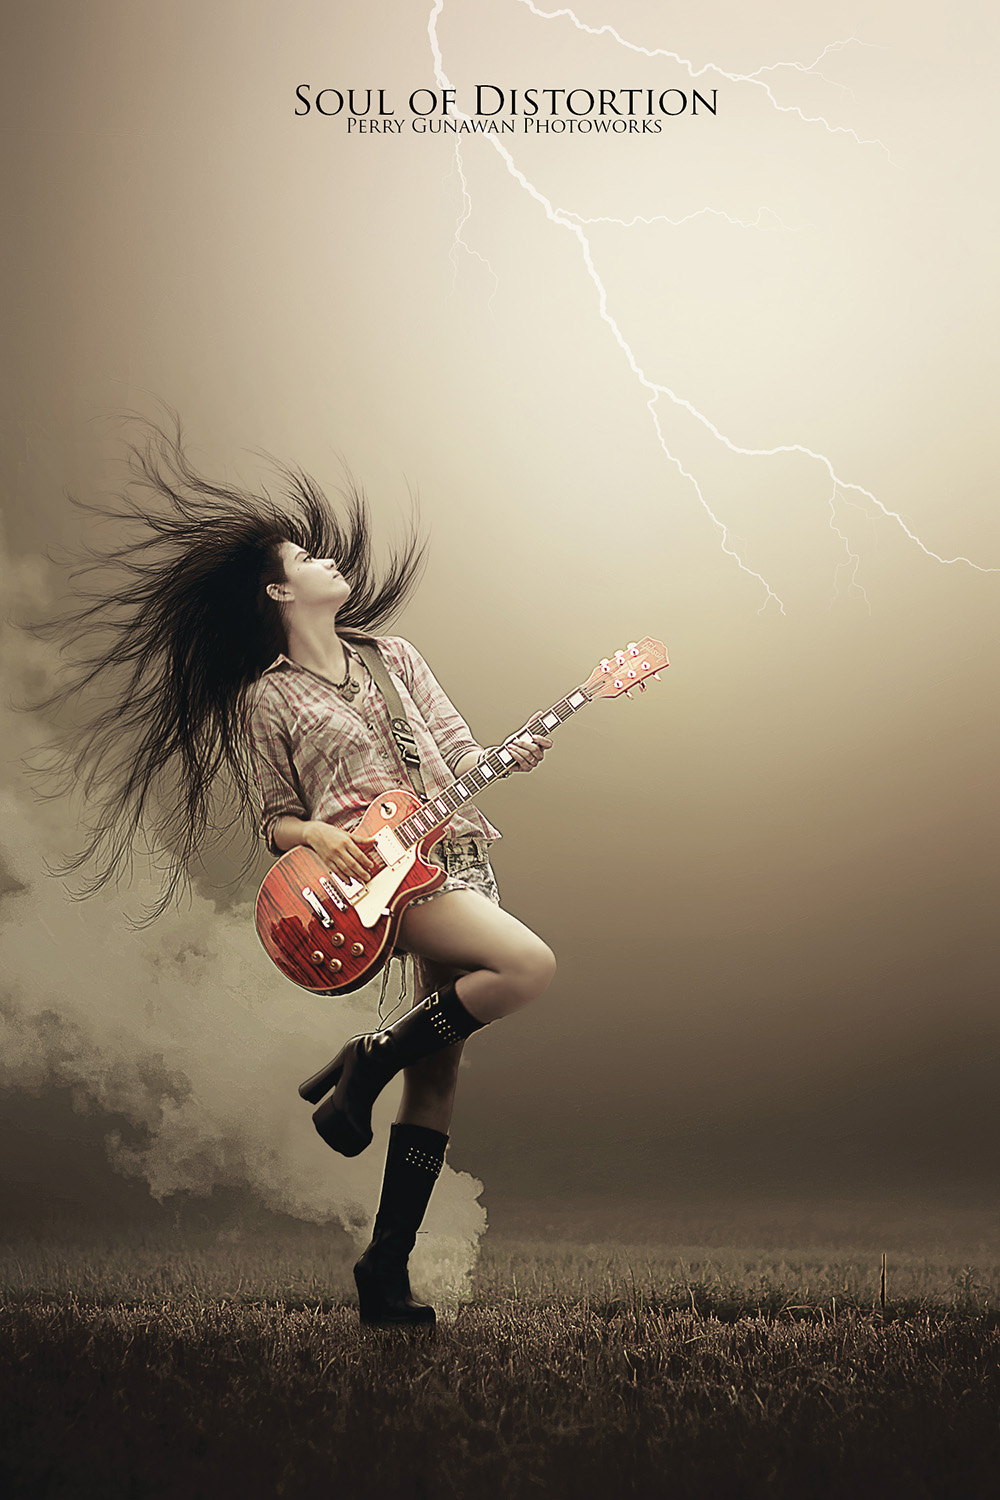 Soul Of Distortion by perigunawan